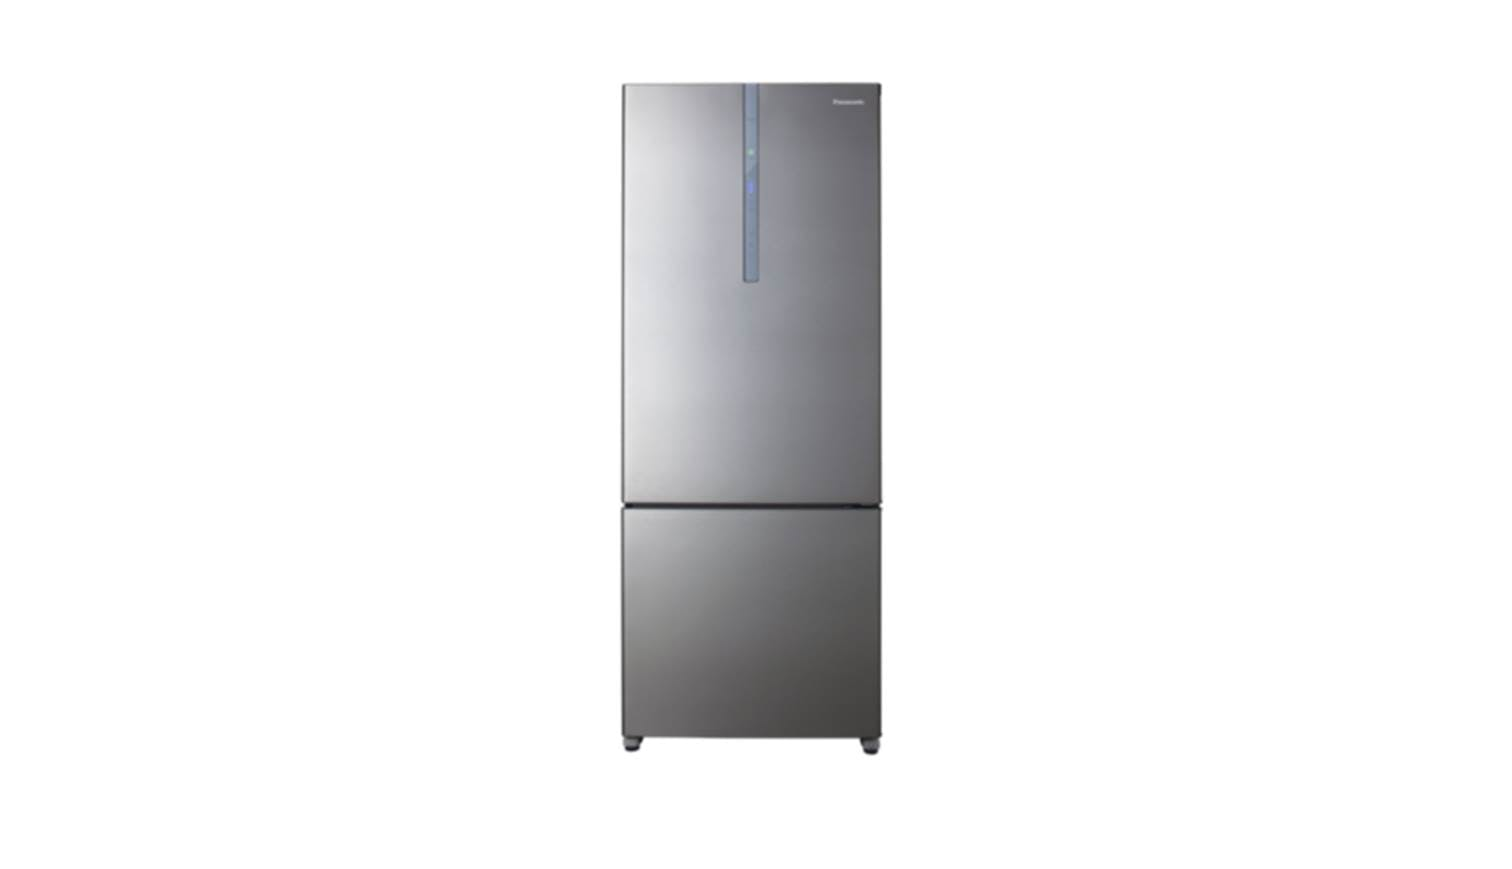 Panasonic Nr Bx468xss1 450l 2 Door Refridgerator Harvey